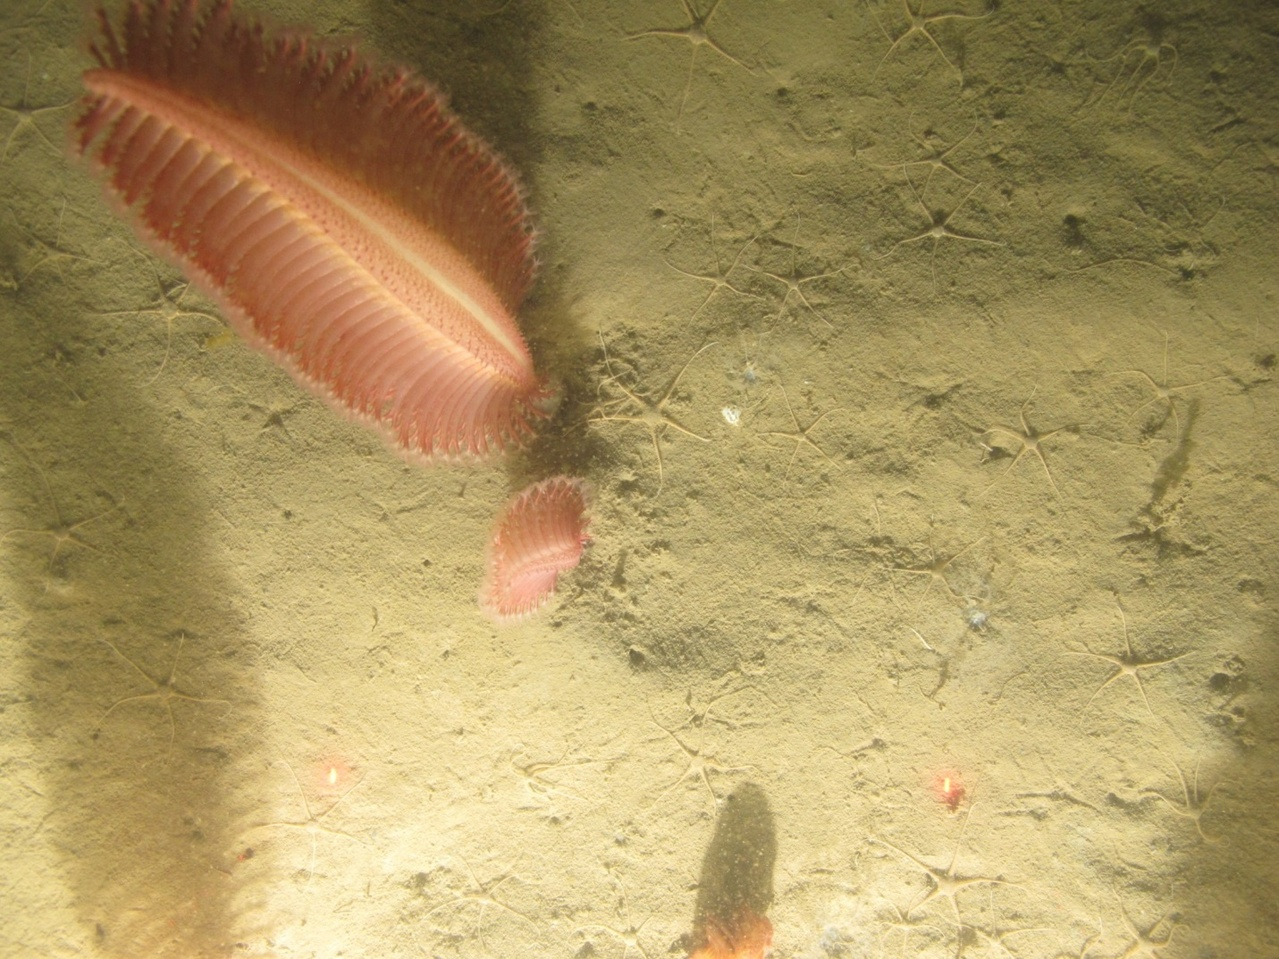 a sea pen photographed on ocean bottom